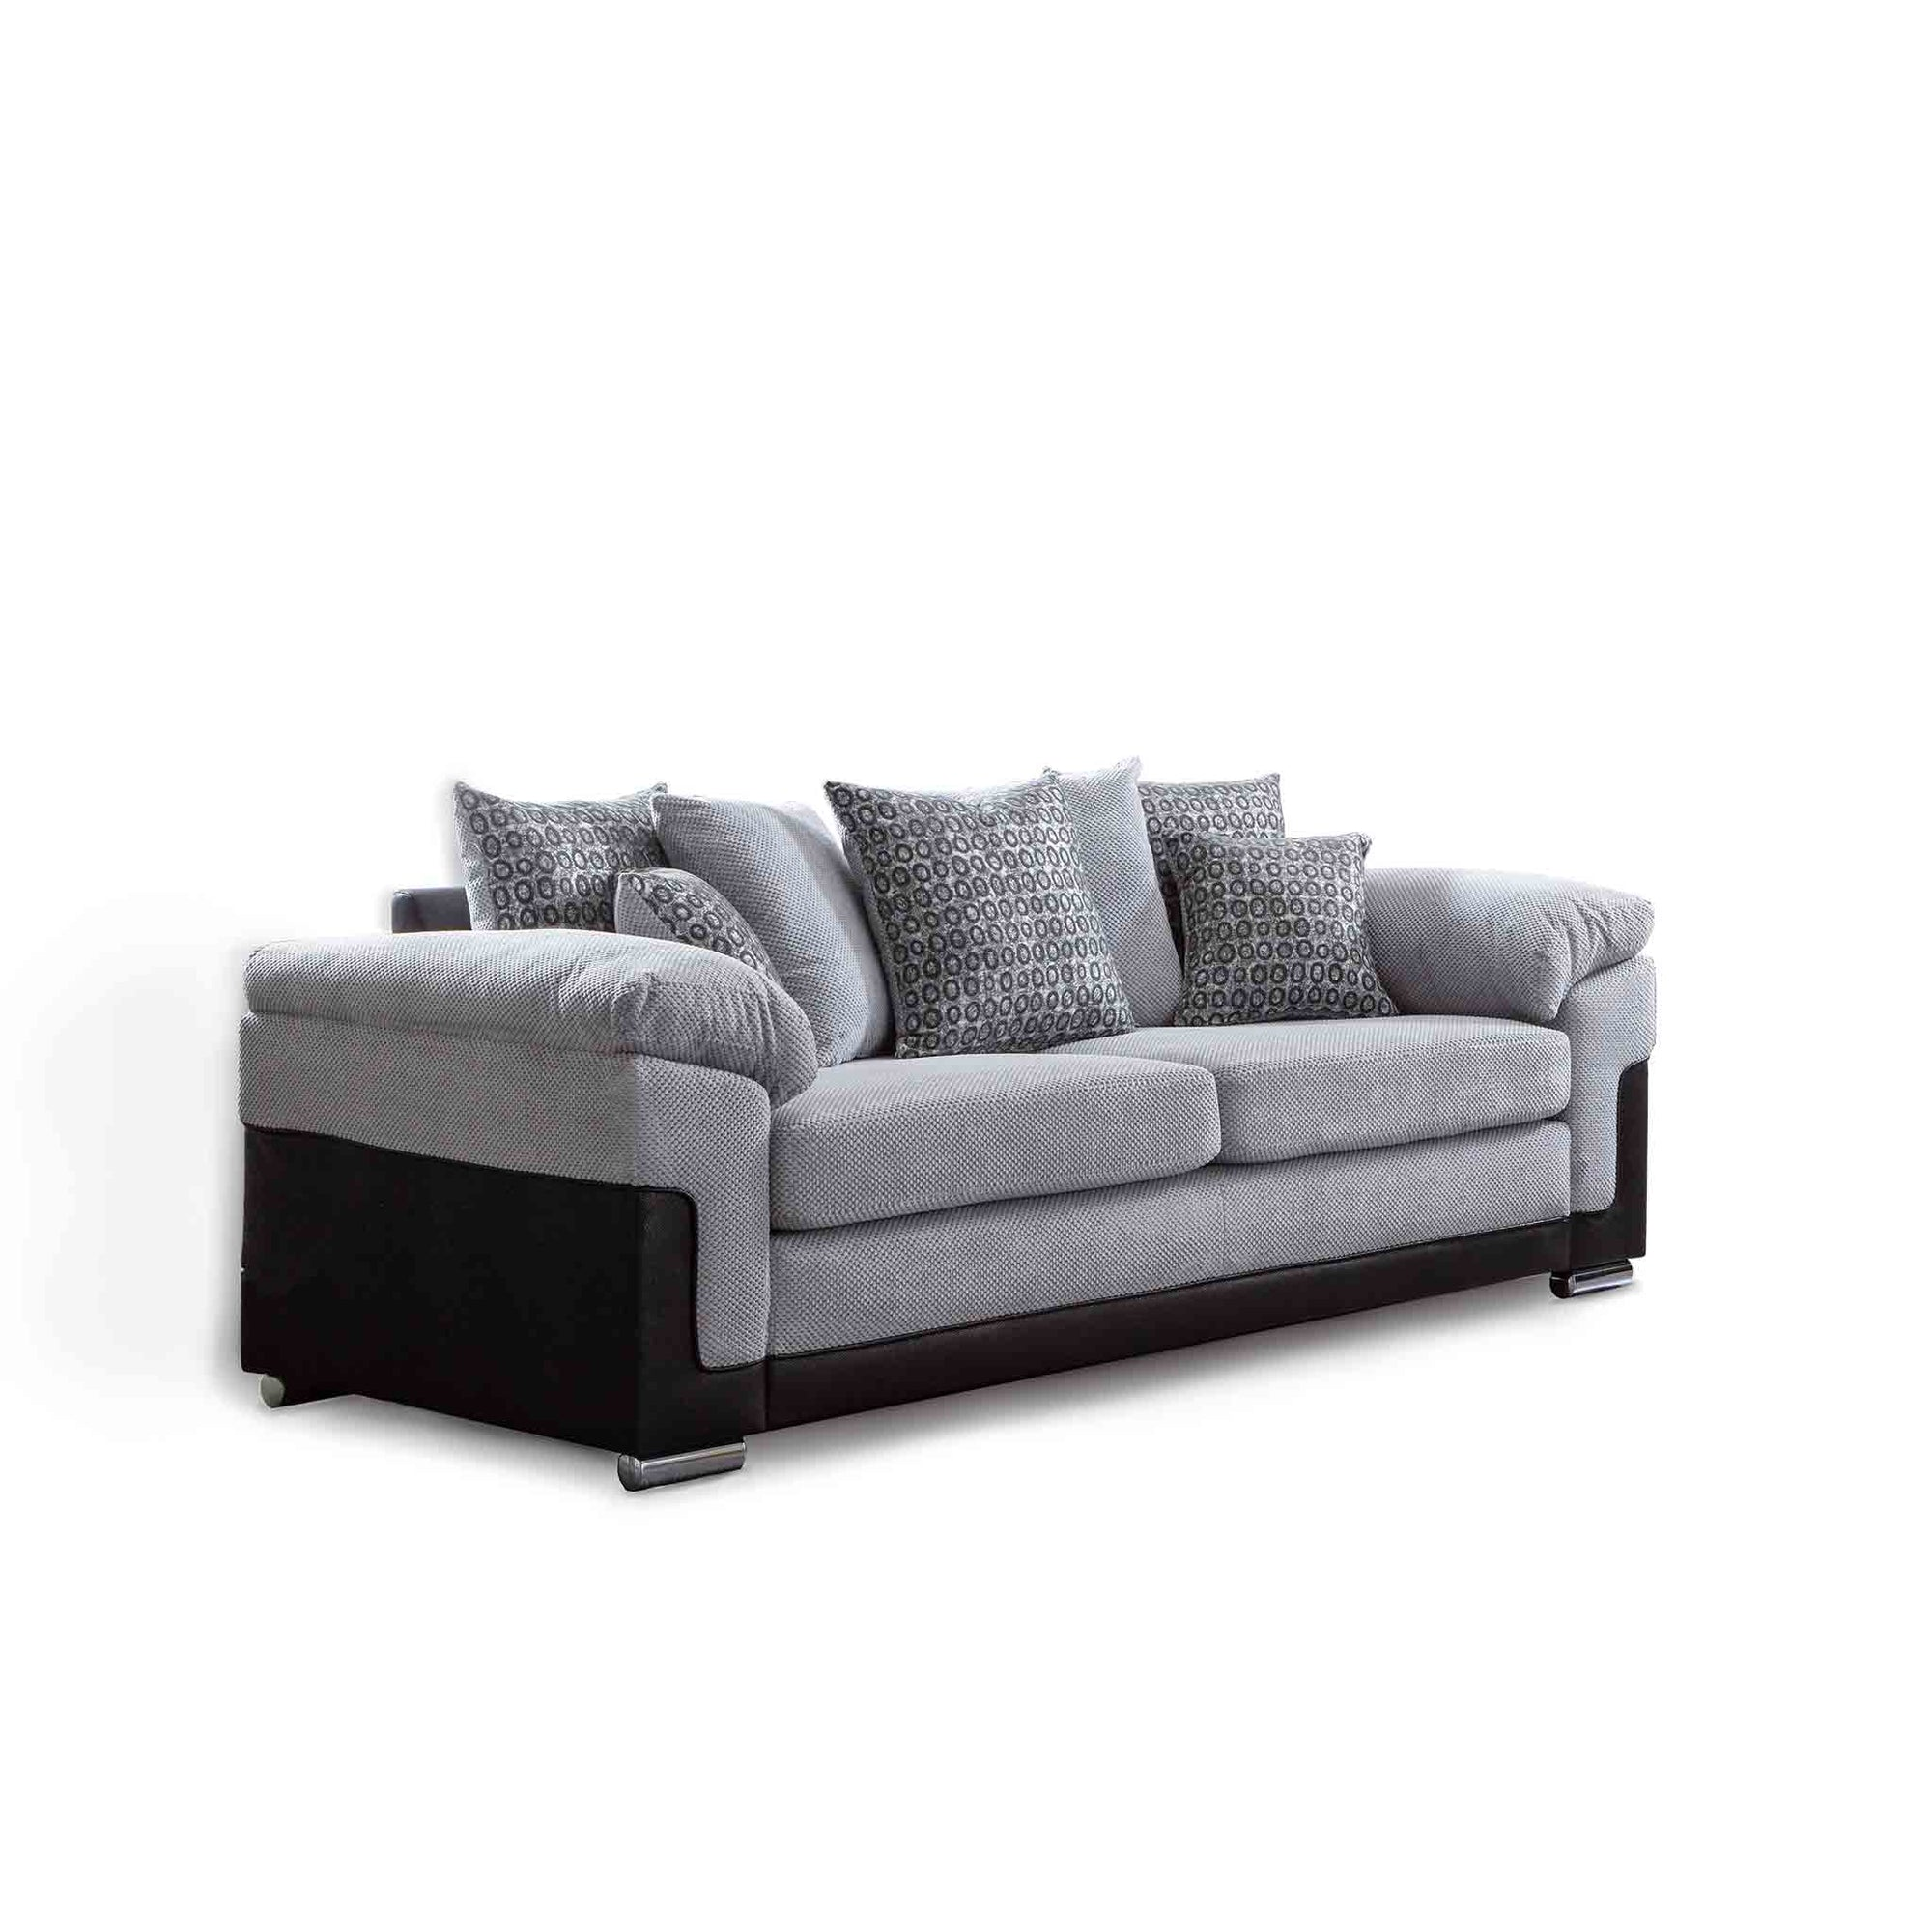 Ameba Silver 3 Seater Fabric & Faux Leather Sofa from Roseland Furniture